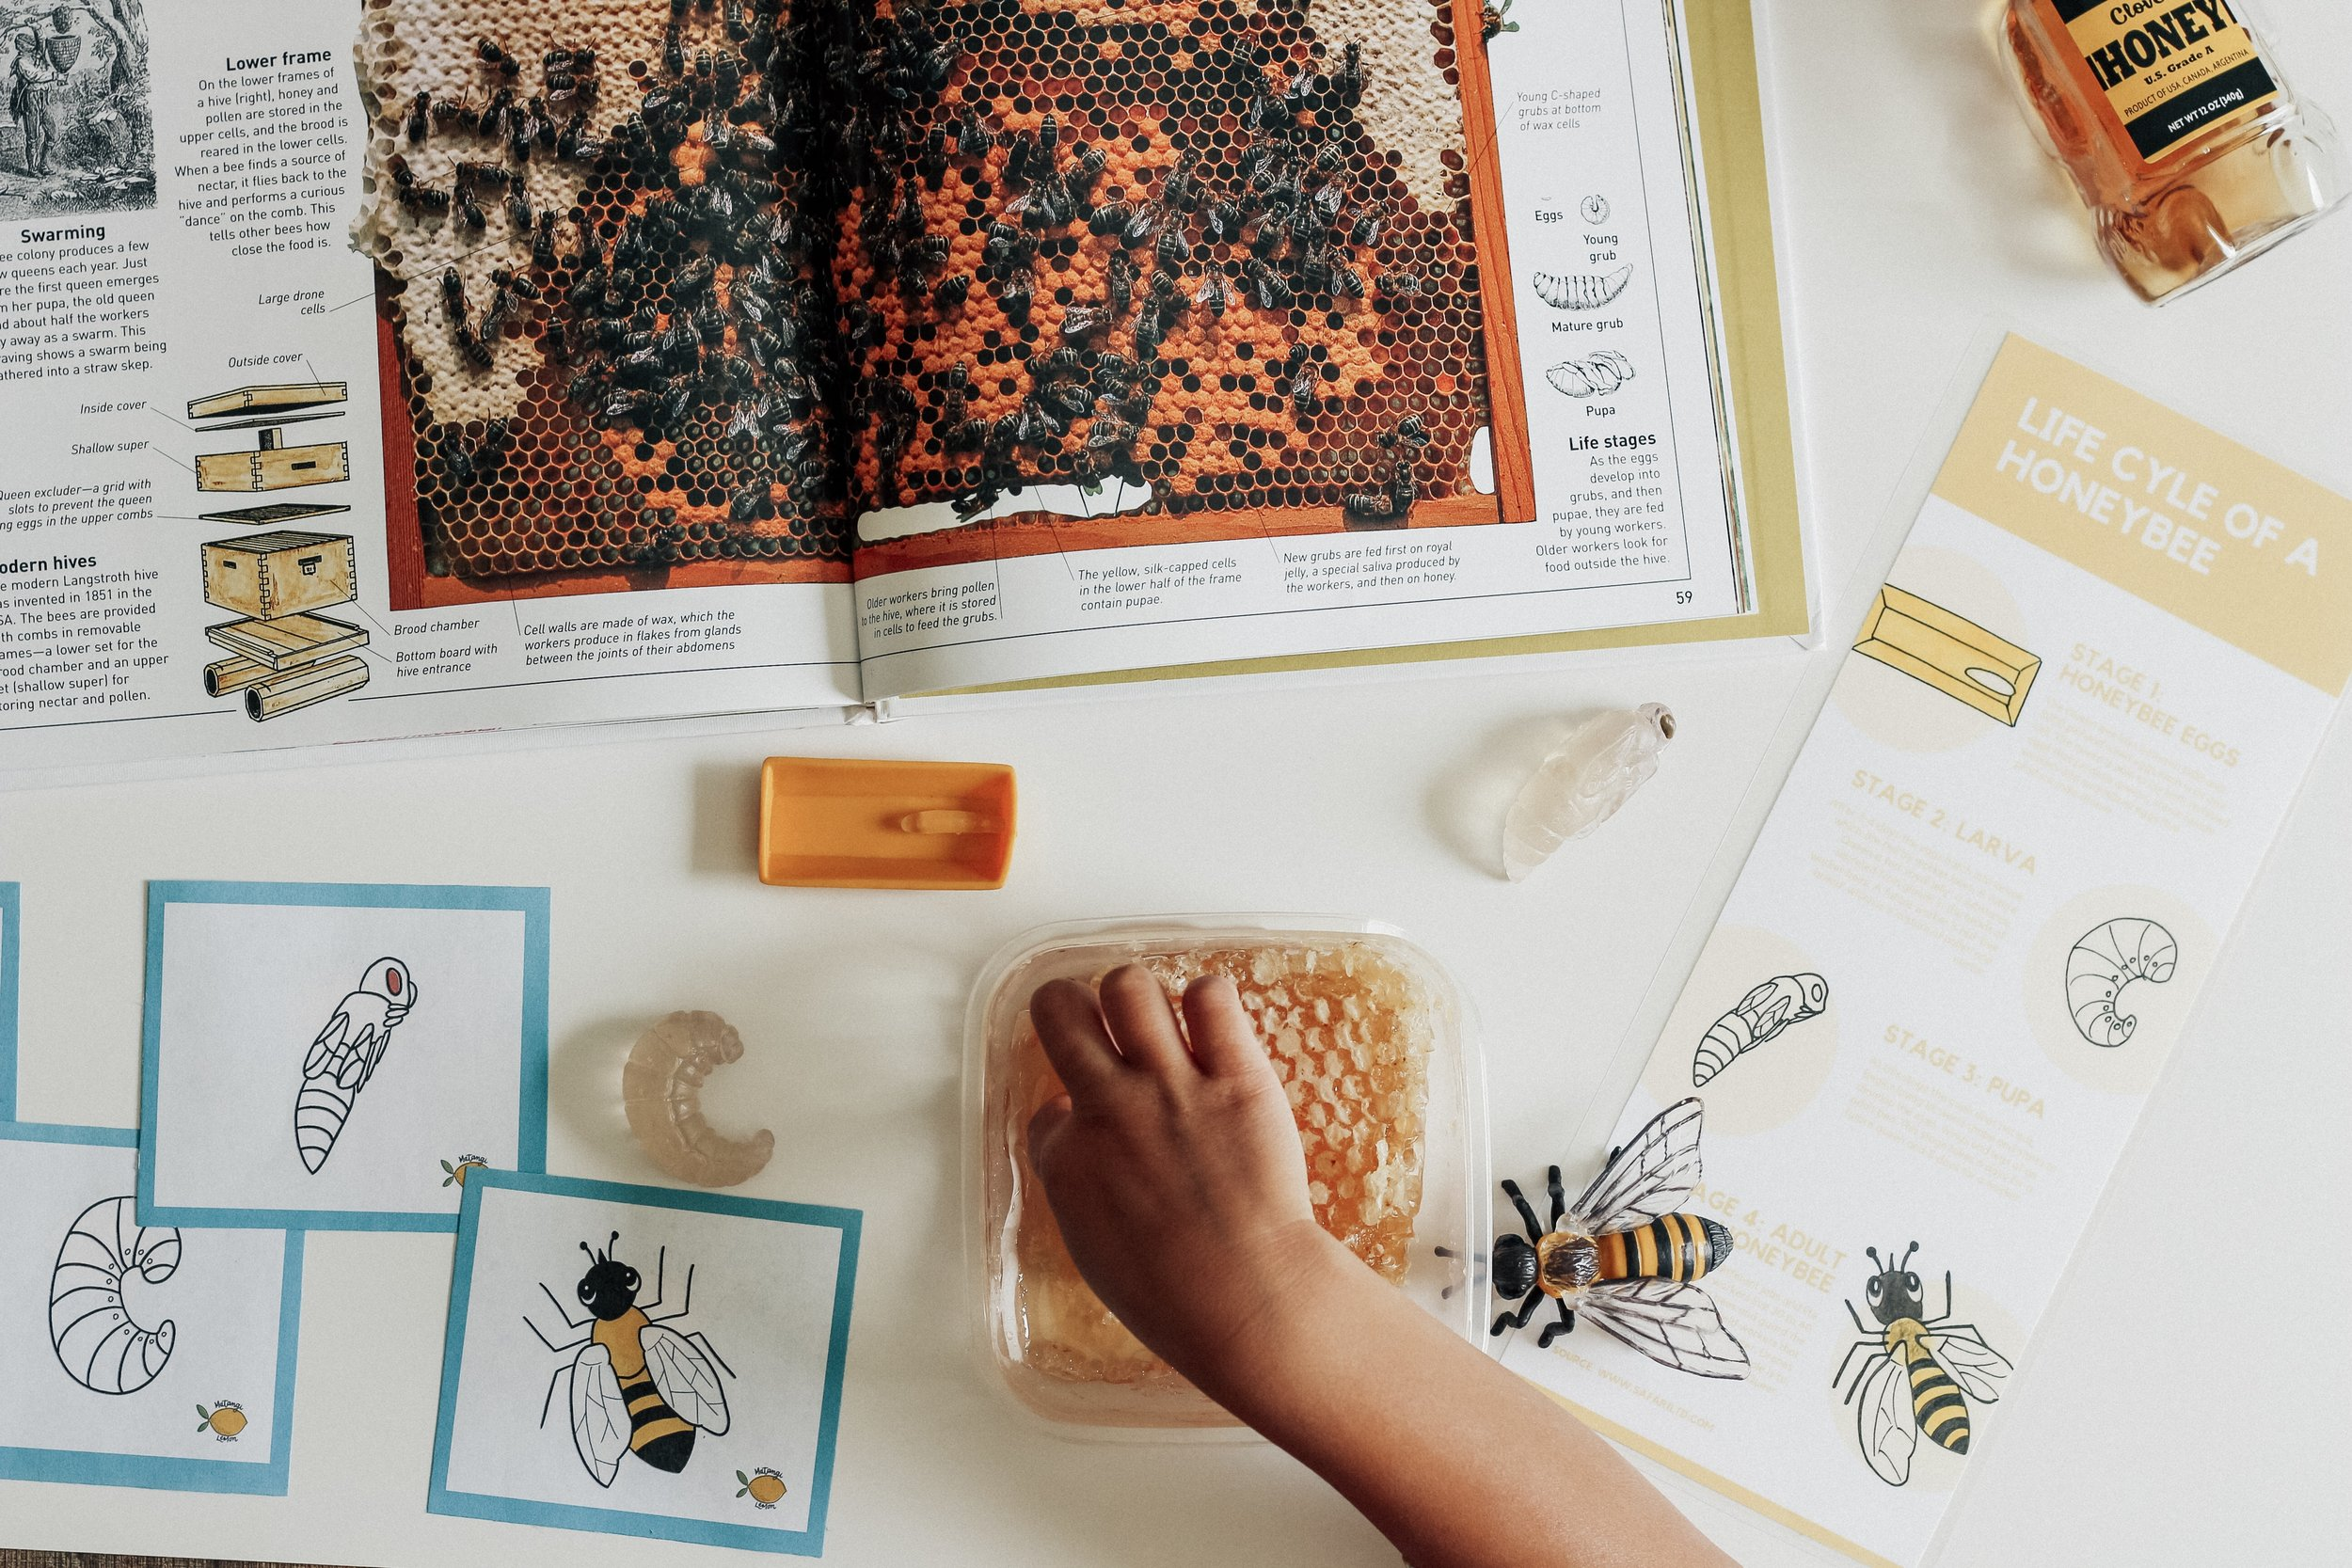 Honeybee life cycle go fish cards and infographic printables along with life cycle toys and real honeycomb! Read more about what we incorporated in our last bug unit by clicking  here !